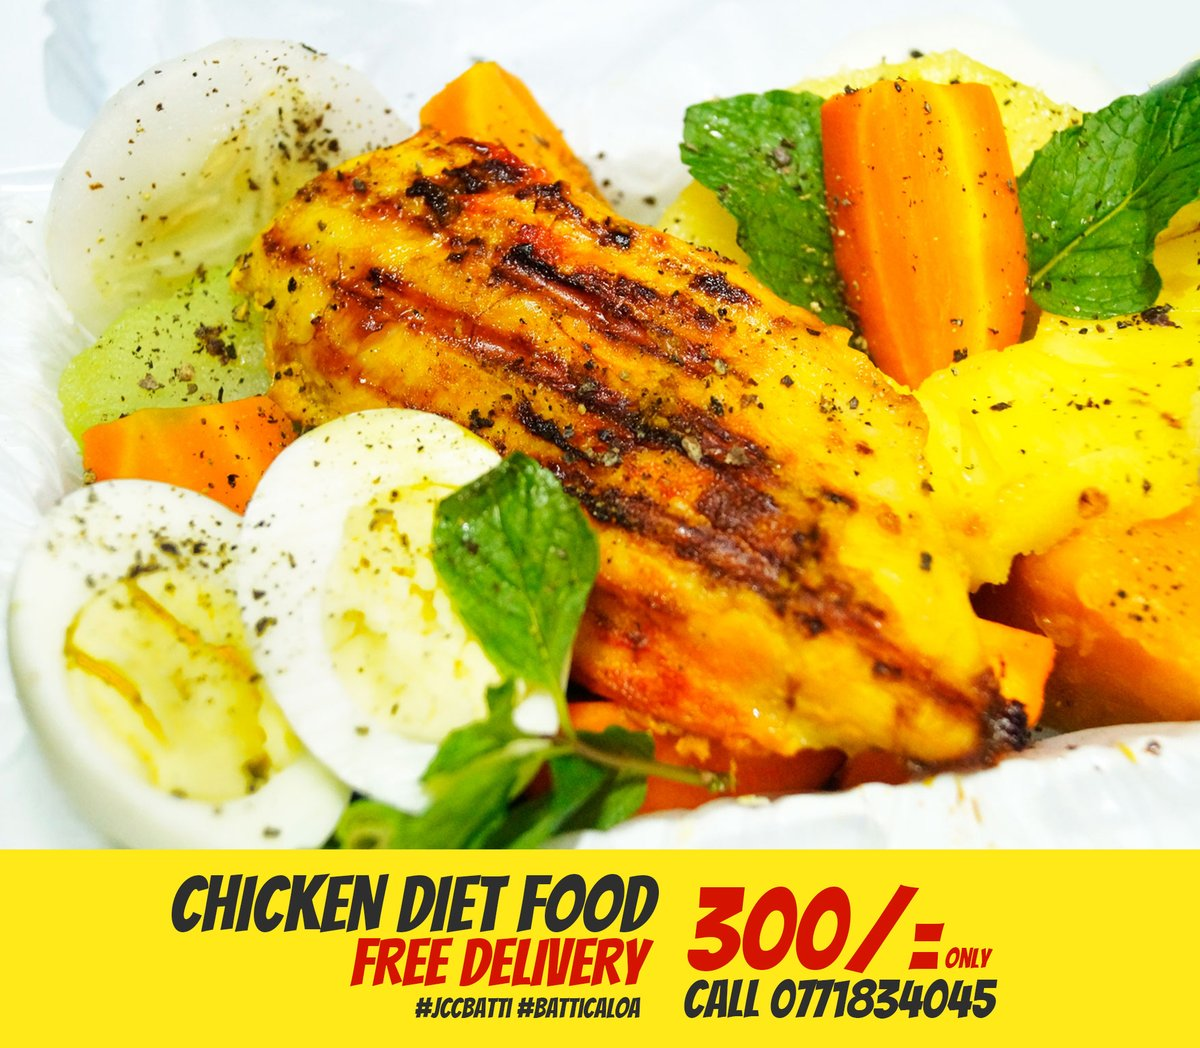 You can get #Chicken Diet Food at JC #Catering Services Batticaloa. One of the Meal Delivery company in Eastern Province Sri Lanka #ChickenDiet #DietFood